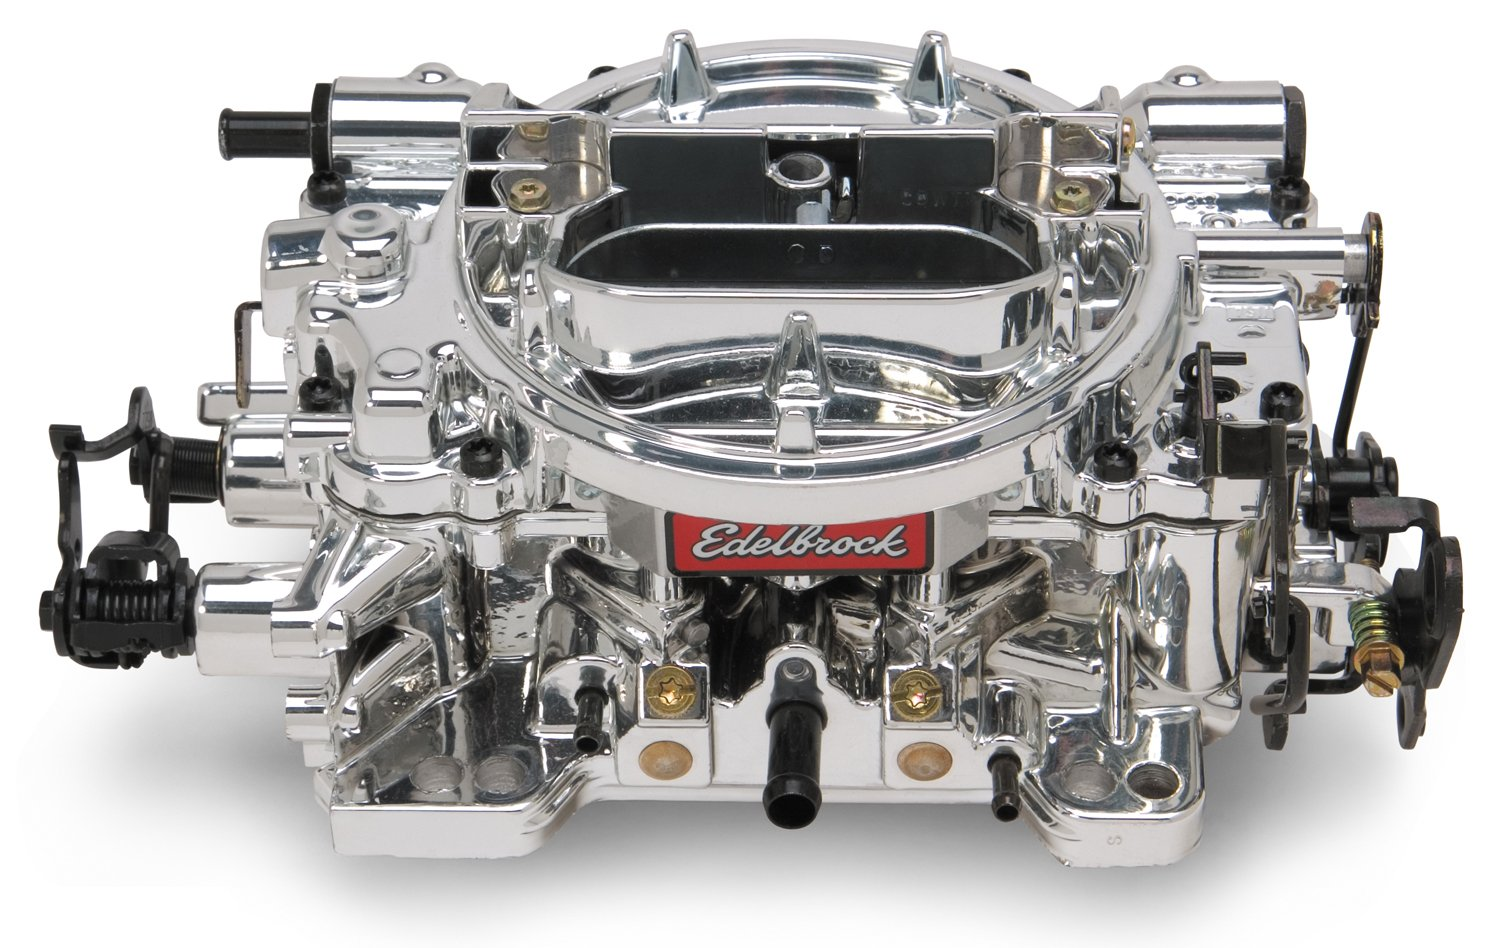 Amazon.com: Edelbrock 18054 Thunder Series AVS Carburetor: Automotive